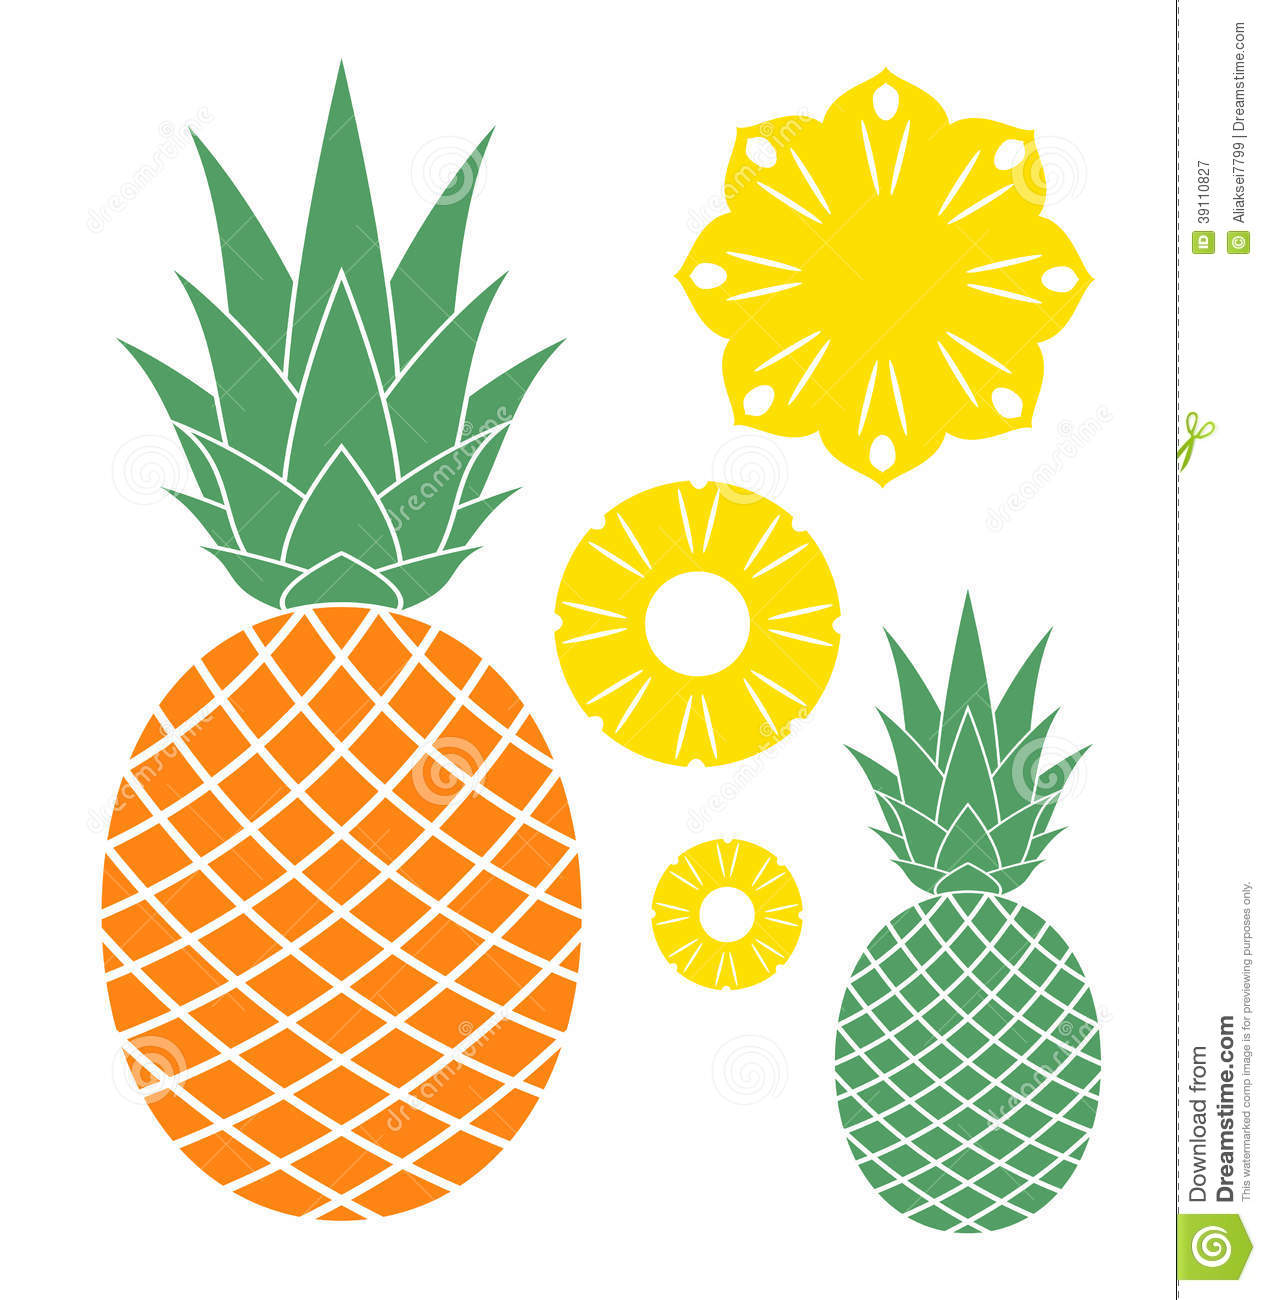 Pineapple  Isolated objects on white background  Vector illustration    Pineapple Logo Vector